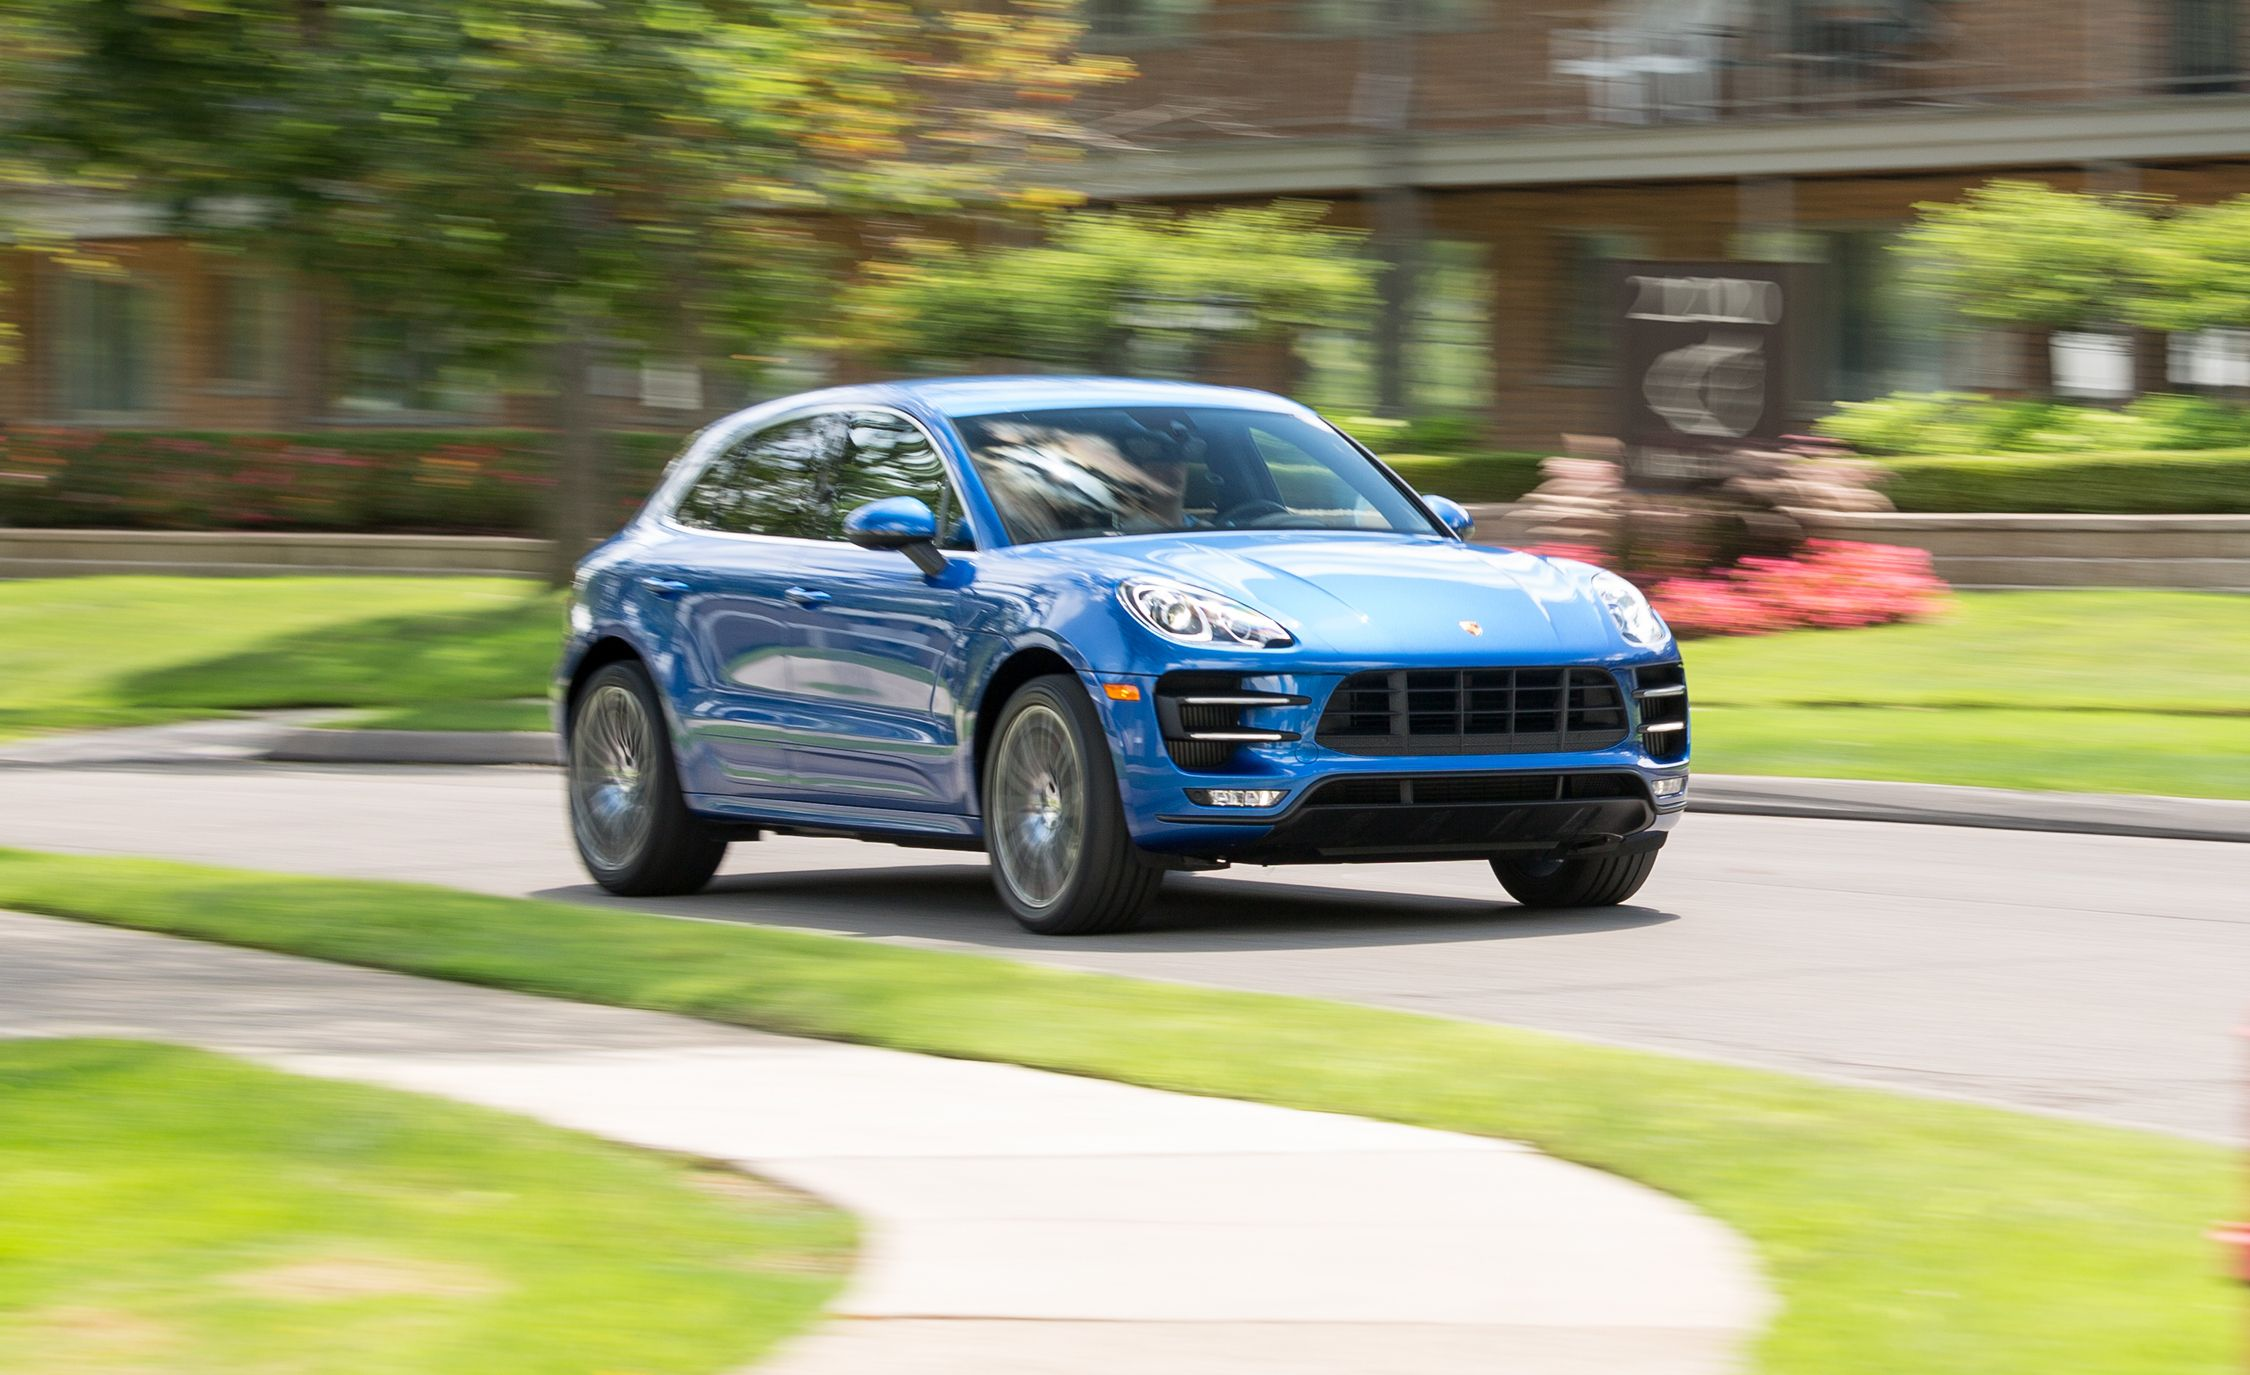 2017 Porsche Macan Turbo In Depth Model Review Car And Driver